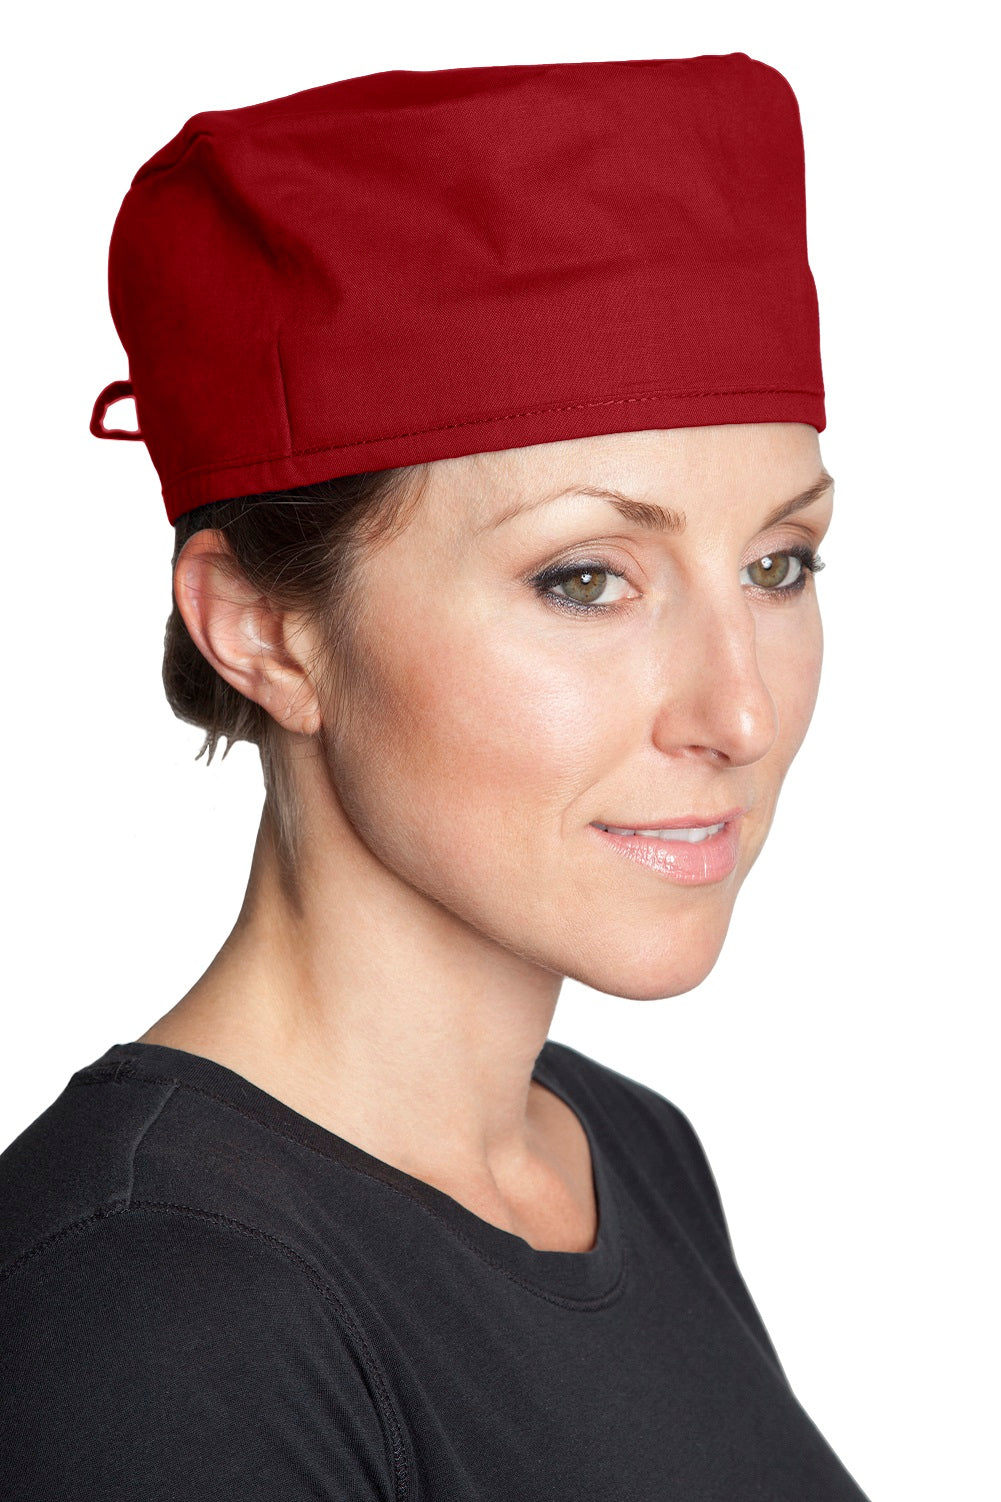 Fiumara Apparel Surgical Scrub Cap - Wine